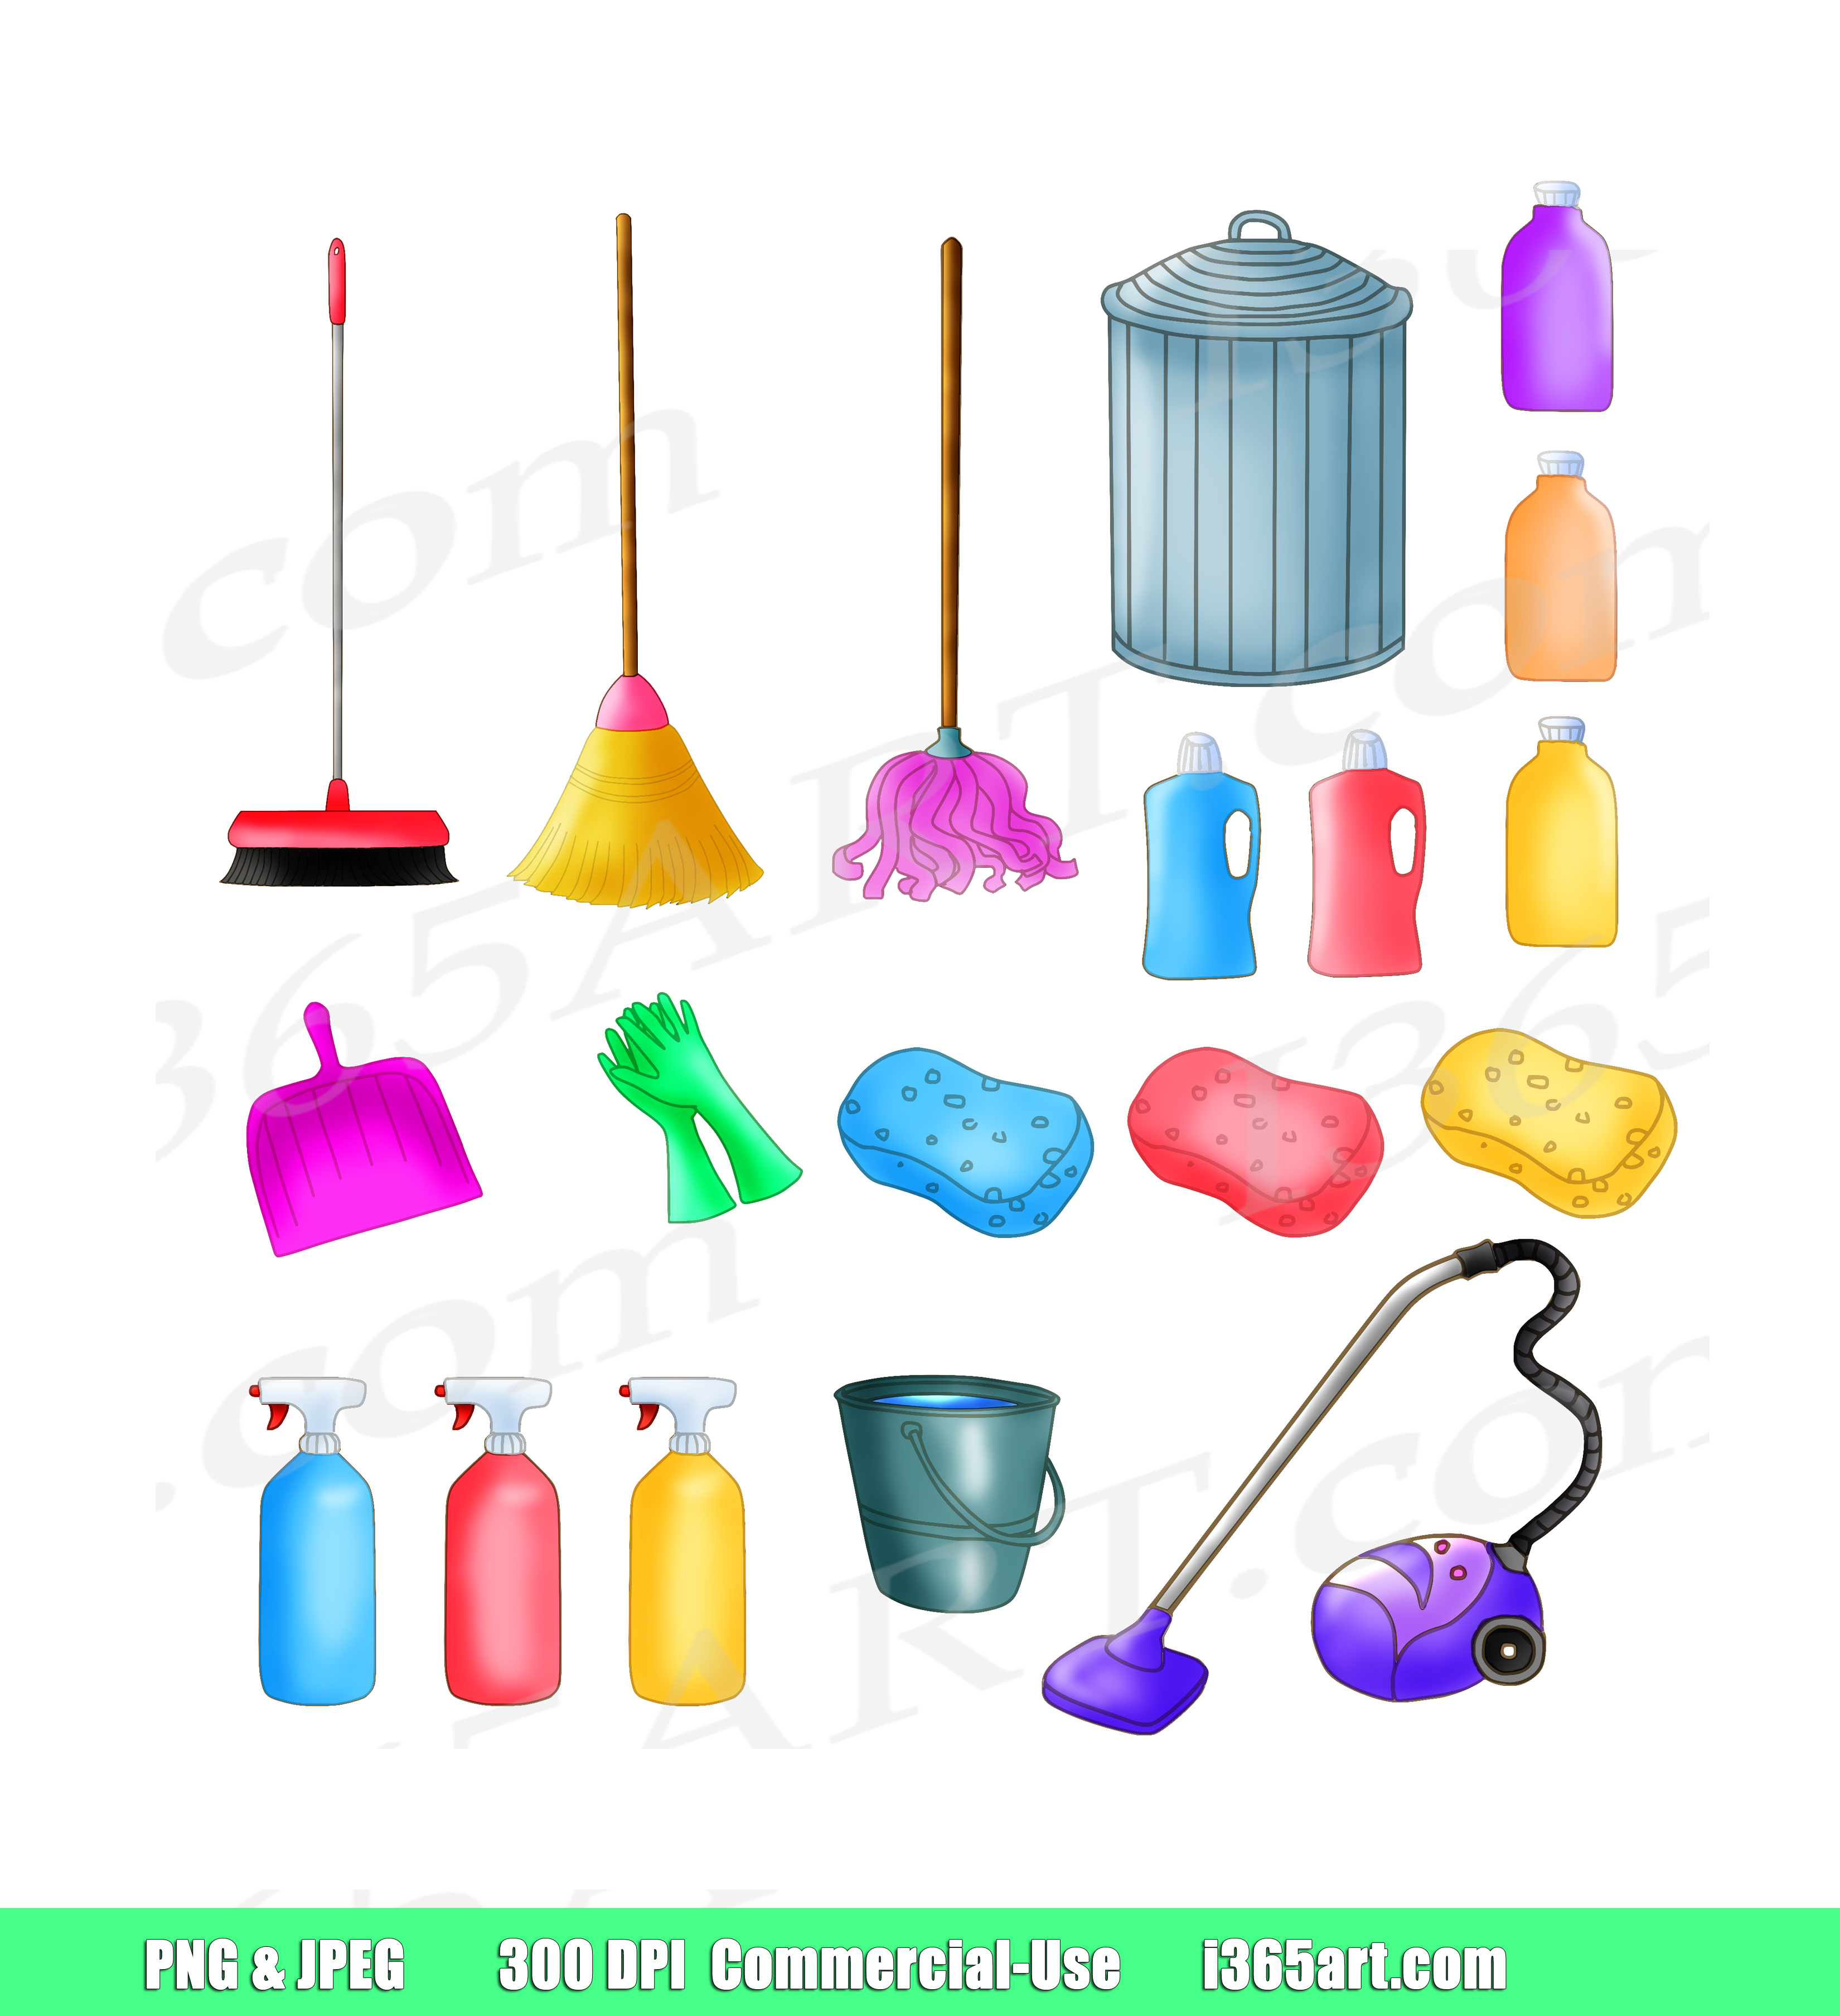 Cleaning Clipart, House keeping, planner sticker icons, scrapbooking, PNG